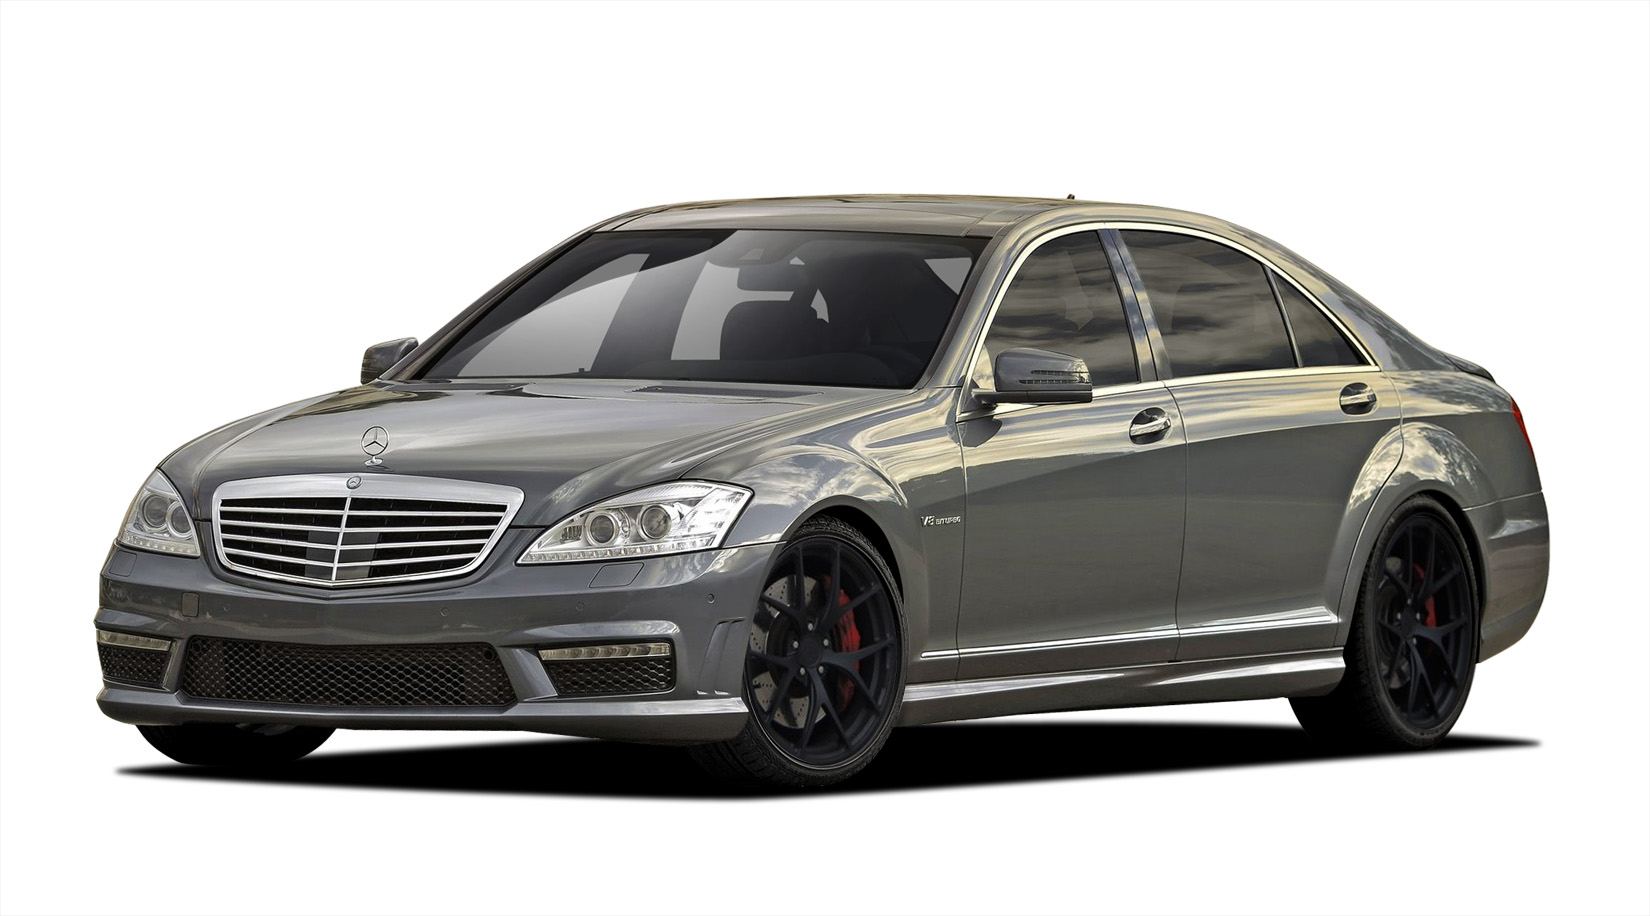 Polypropylene Body Kit Bodykit for 2013 Mercedes S Class ALL - Mercedes S Class W221 Vaero S63 Look Kit ( with PDC ) - 4 Piece - Includes S63 Look Fro